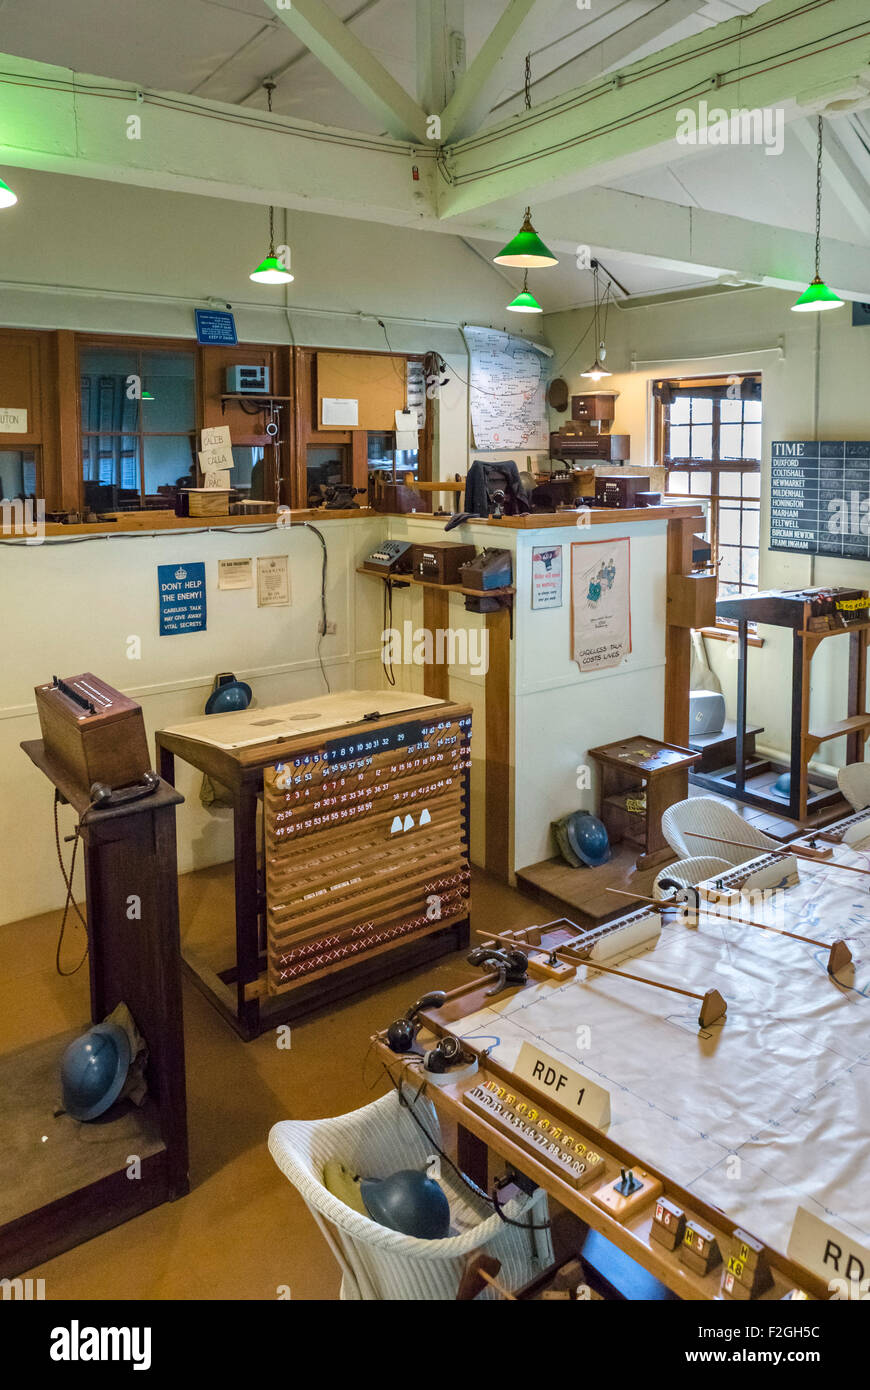 The 1940 Operations Room at the Imperial War Museum, Duxford, Cambridgeshire, England, UK - Stock Image